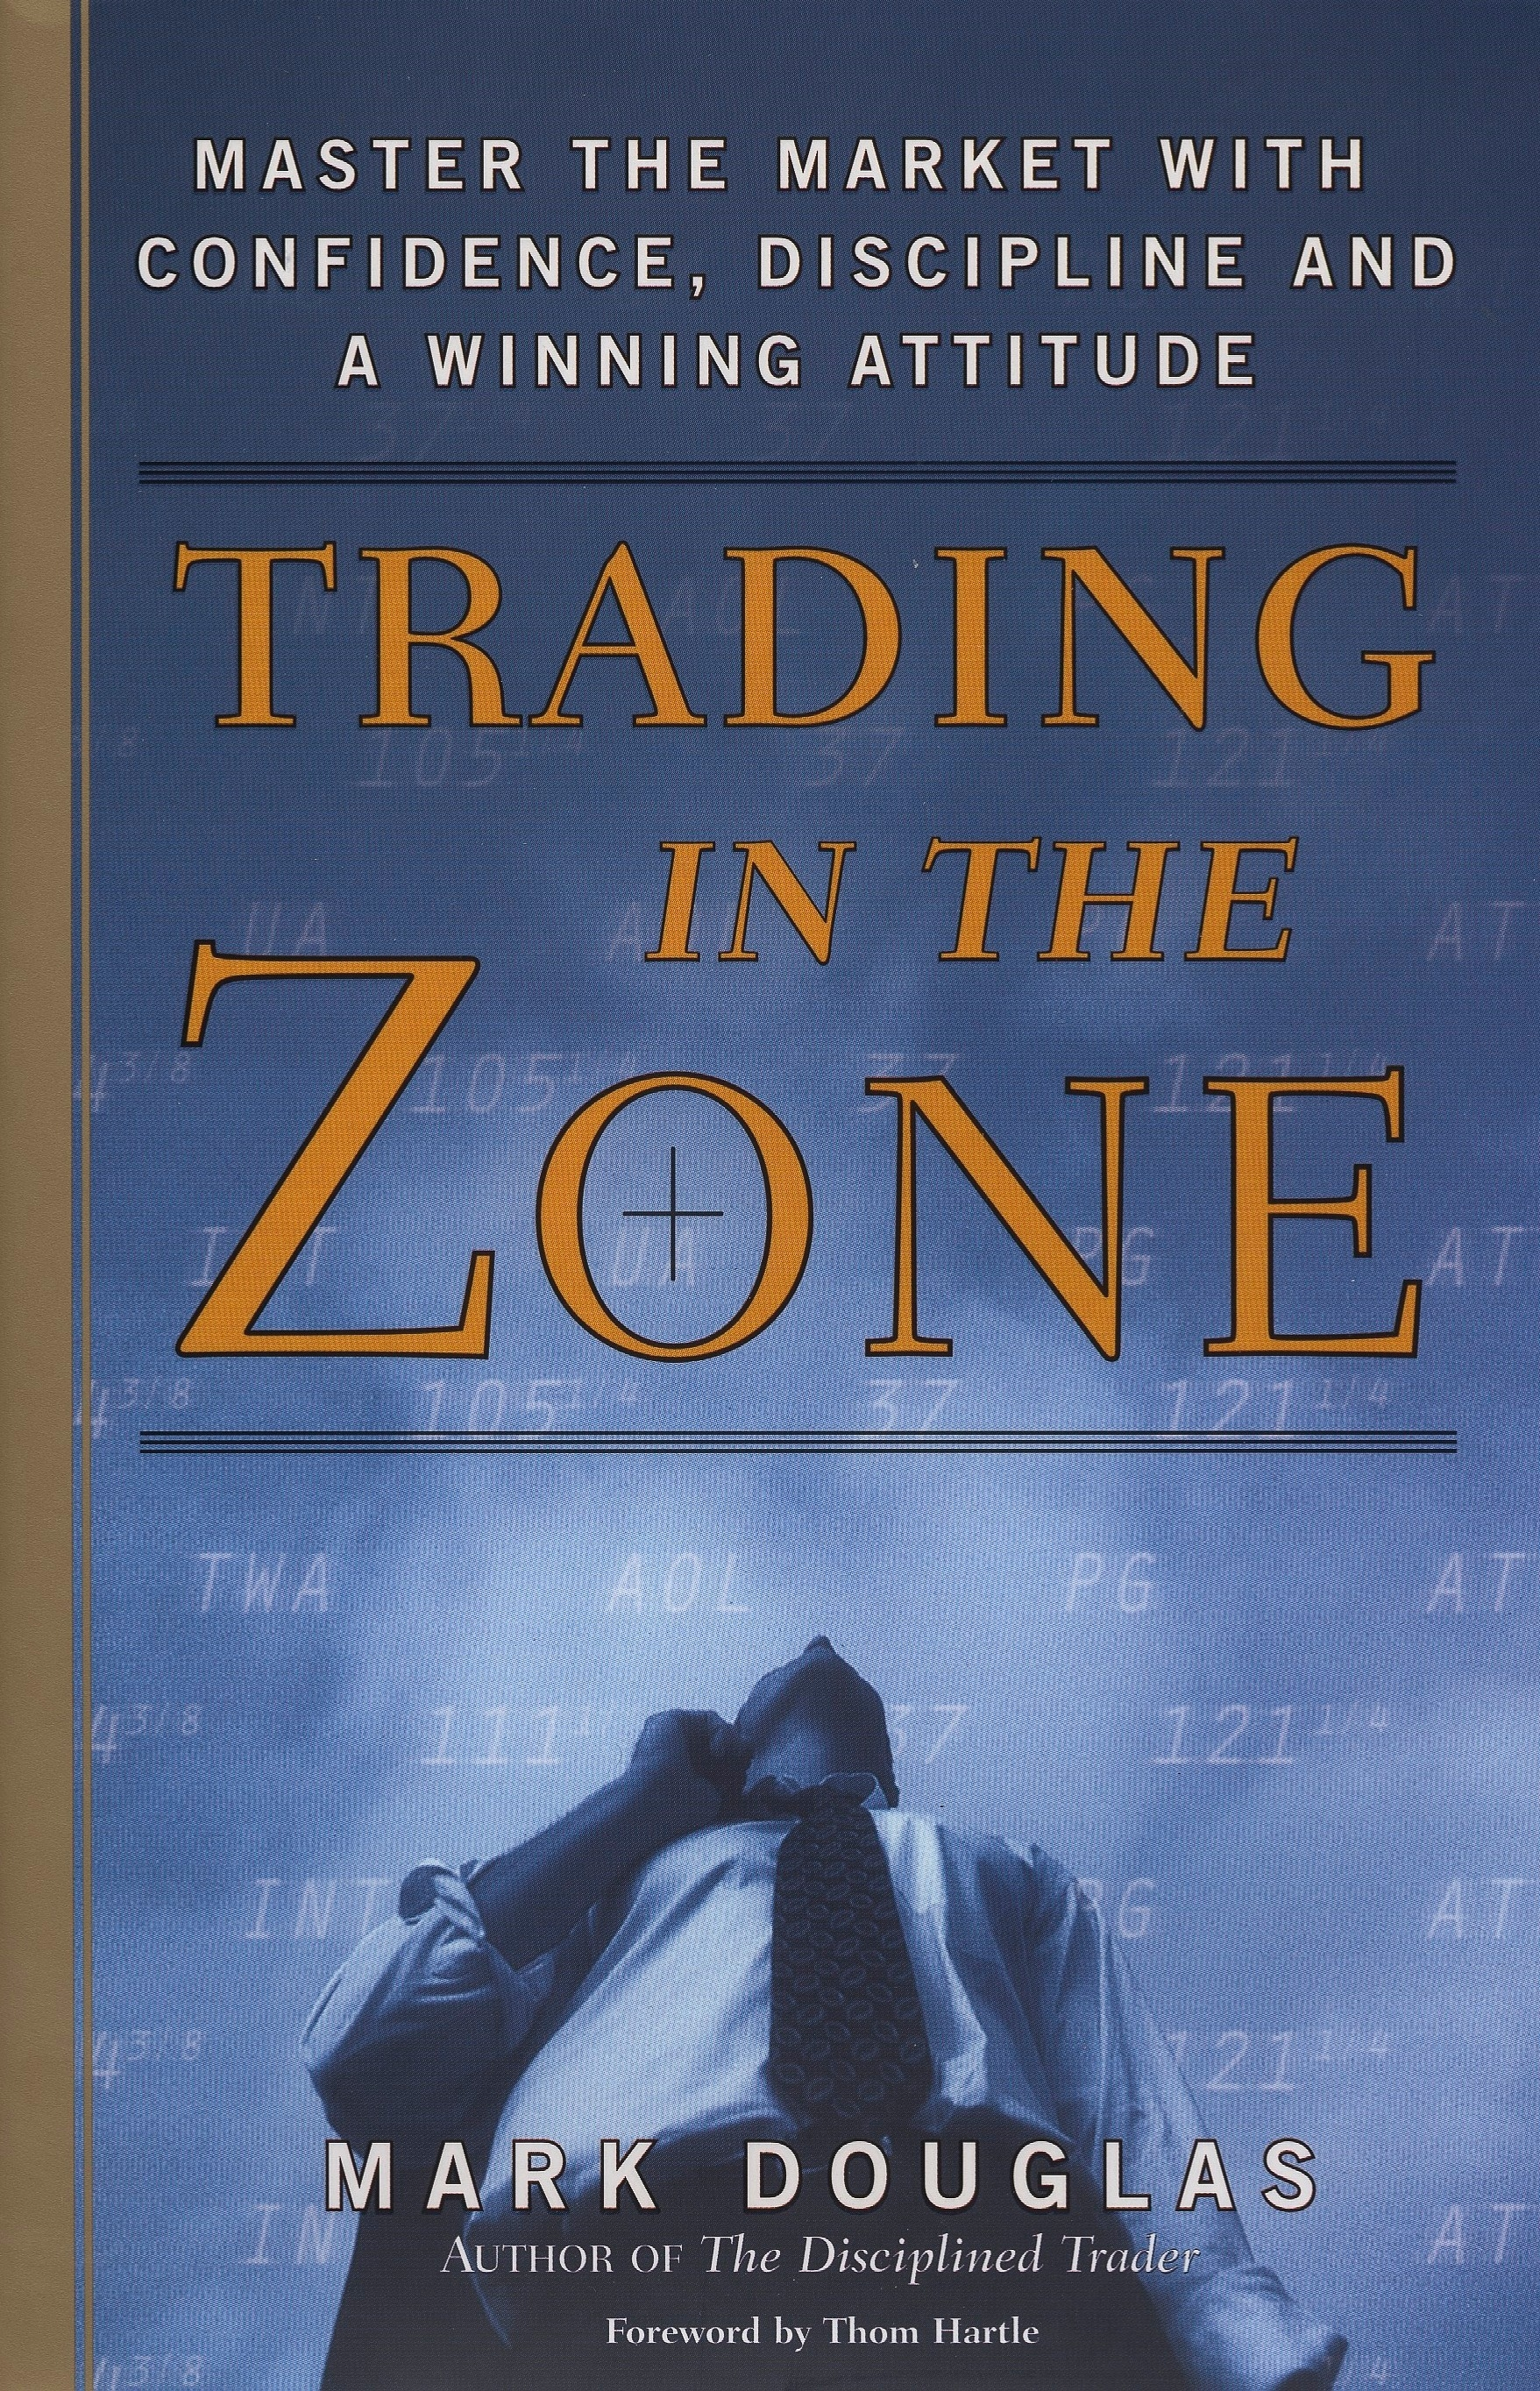 Book Cover Series Zone : Trading in the zone penguin books australia